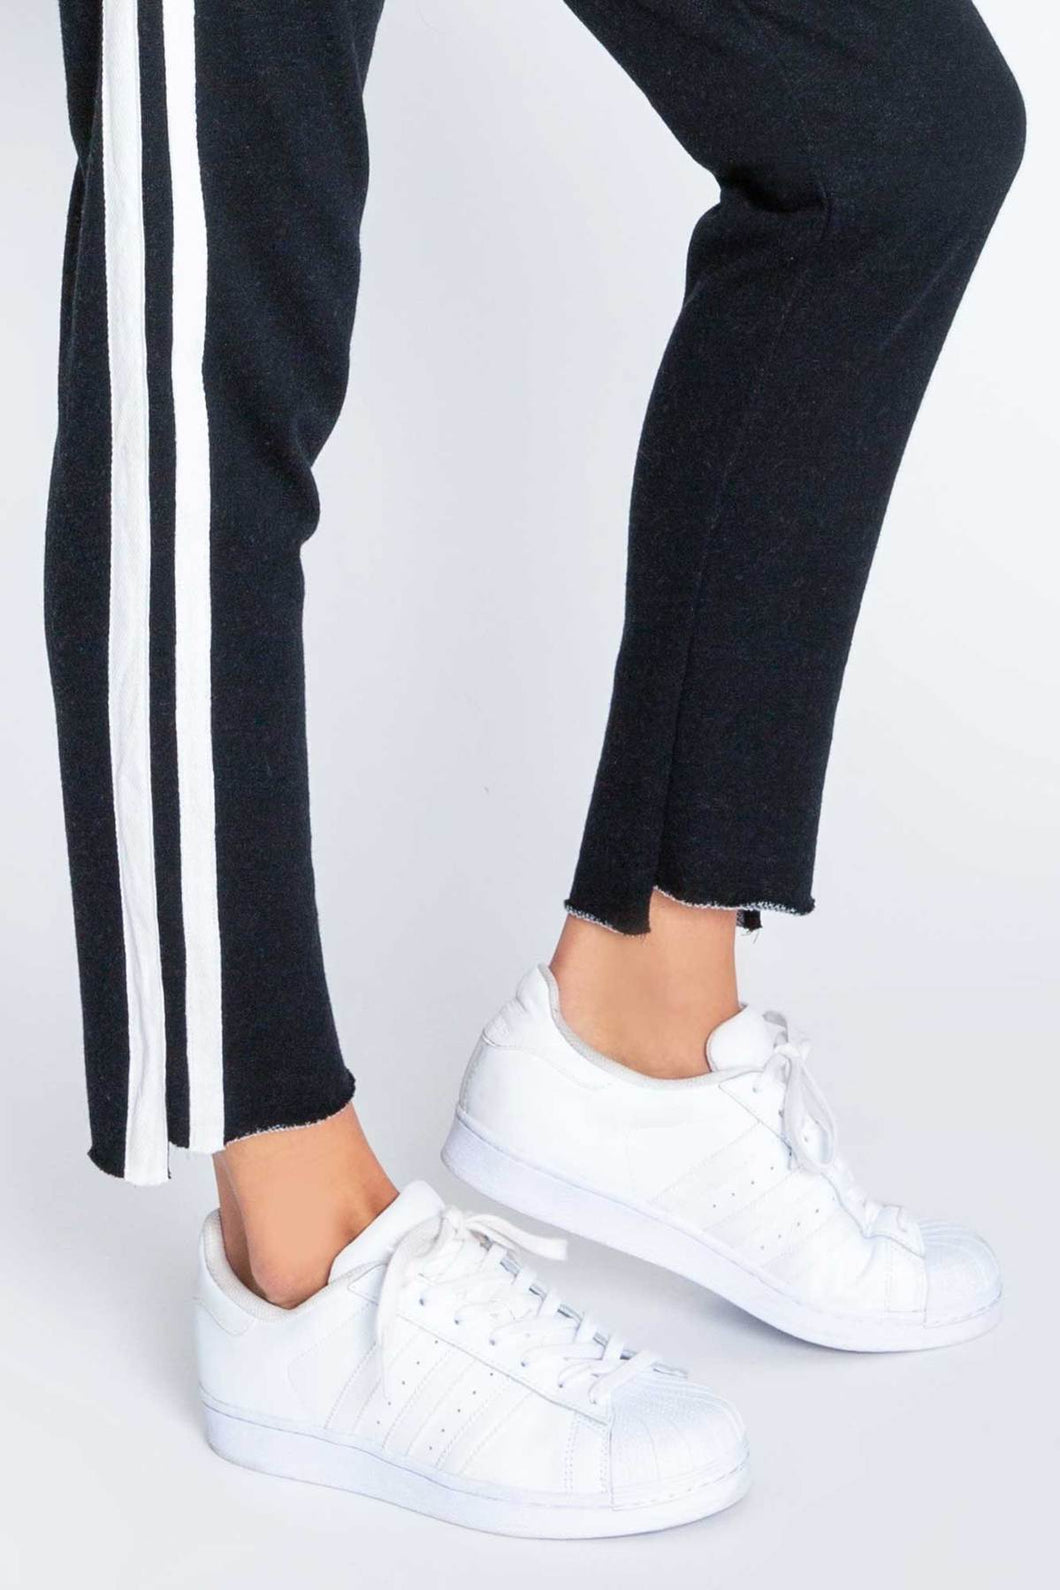 PJ Salvage Black Out Stripe Knit Jogger Pant